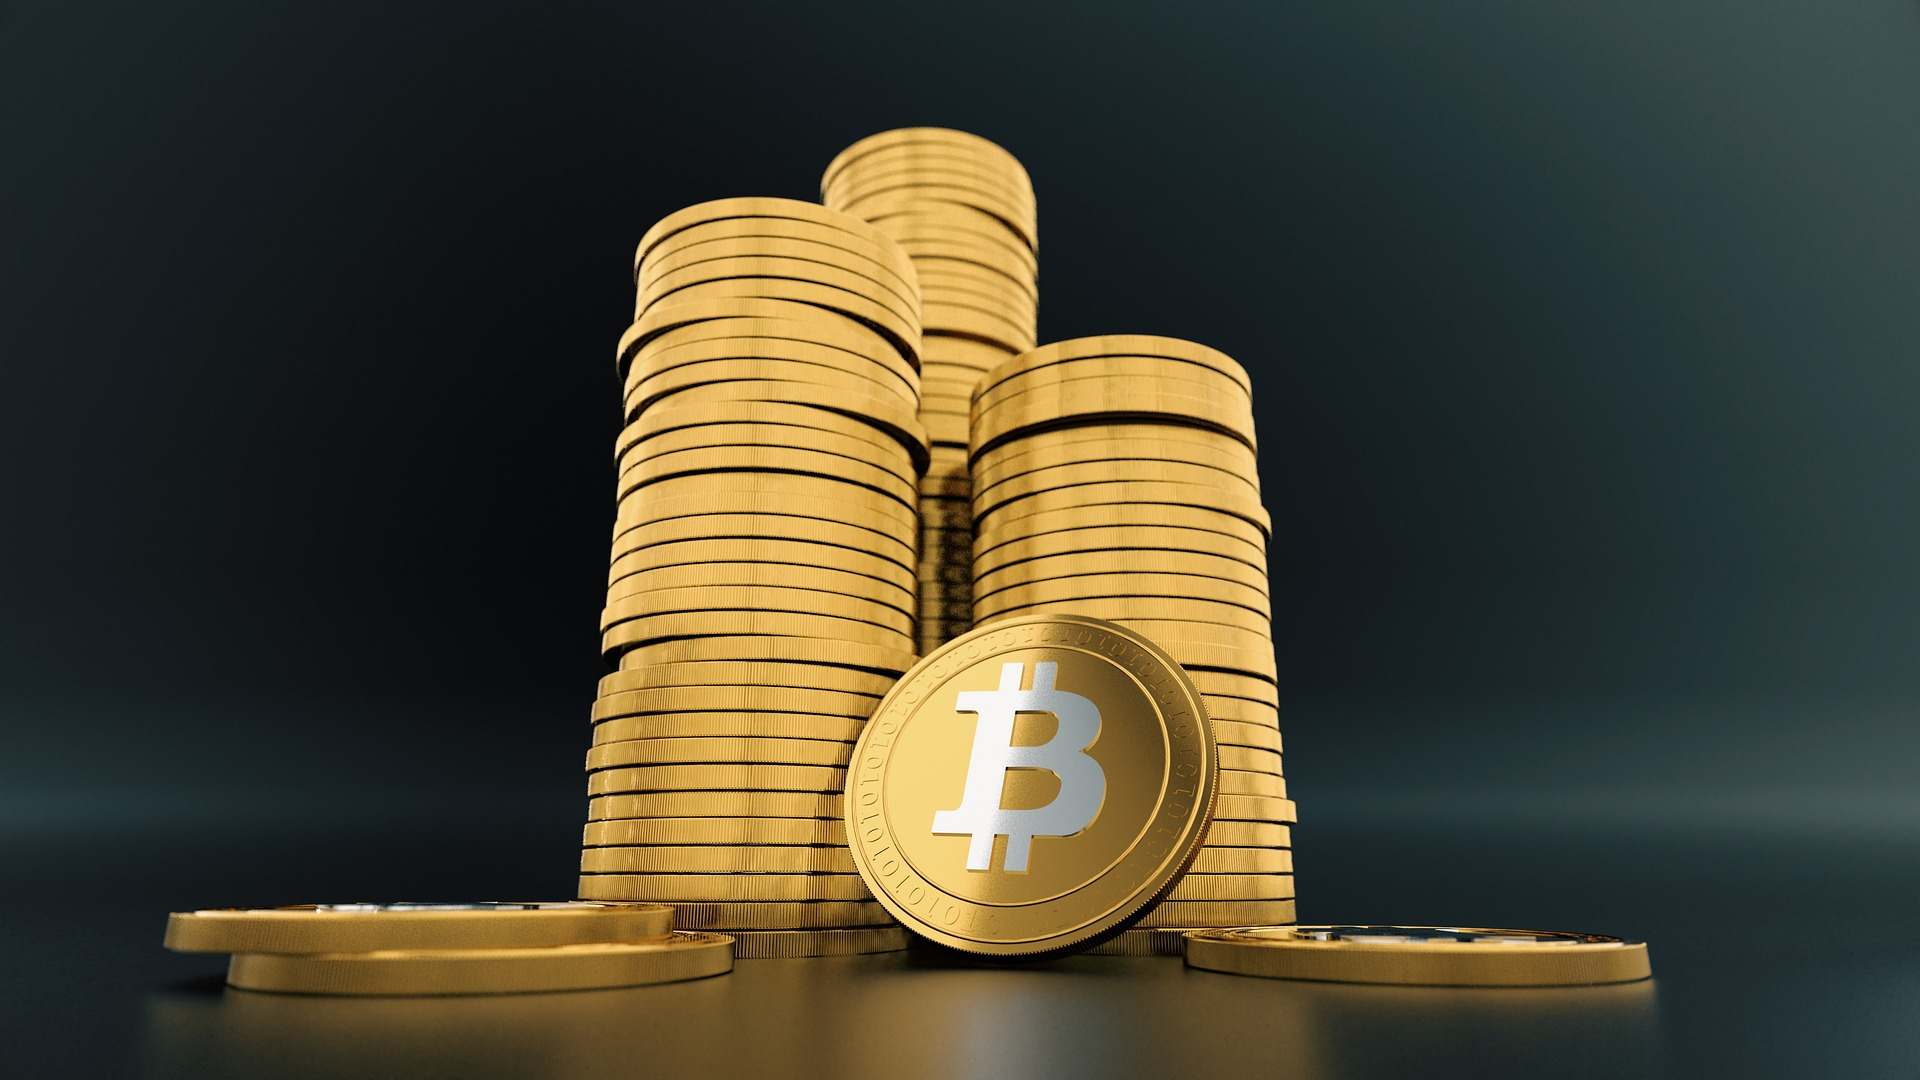 Why Many People Would Still Not Buy Bitcoin If We Turn Back the Hands of Time